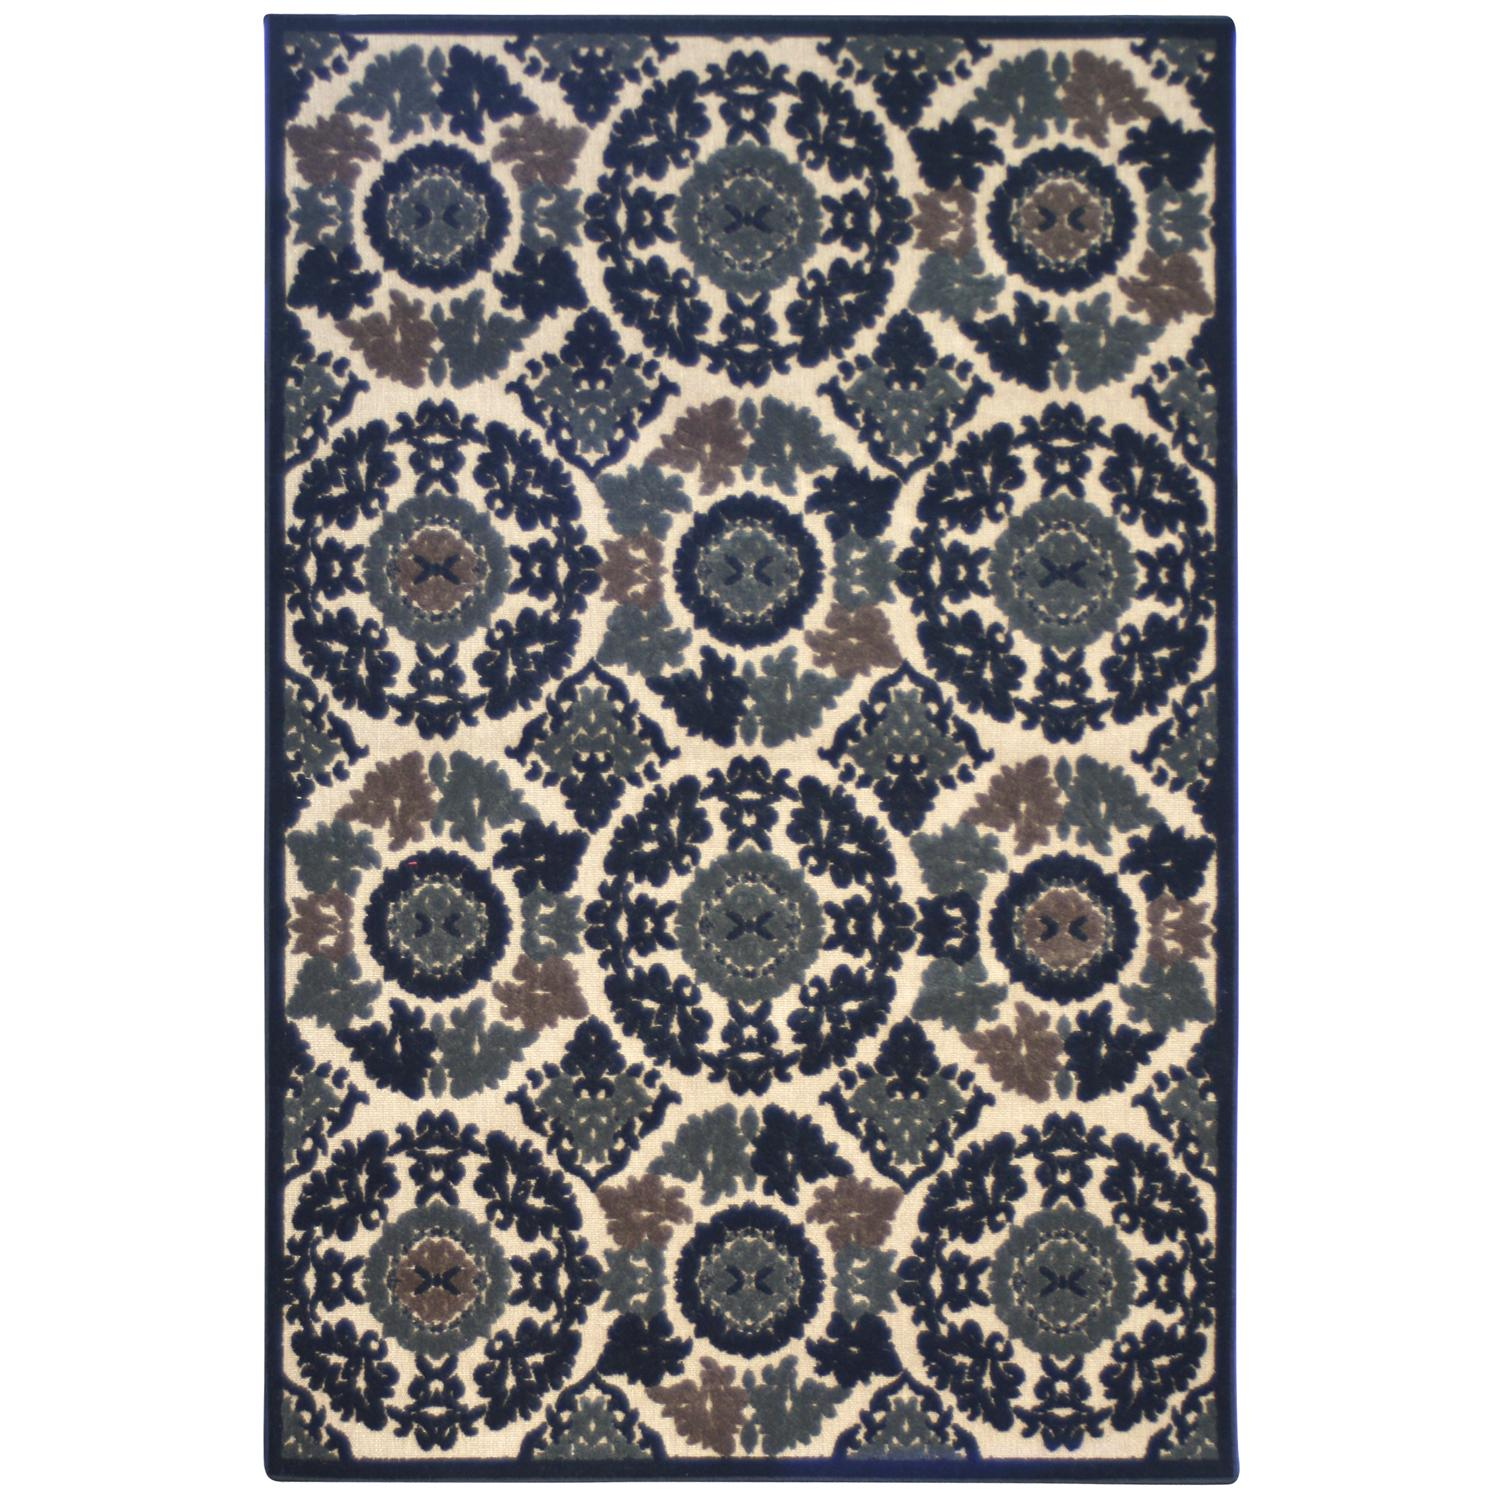 Terrace Transitional Ivory Indoor/Outdoor Rug (8' x 10')